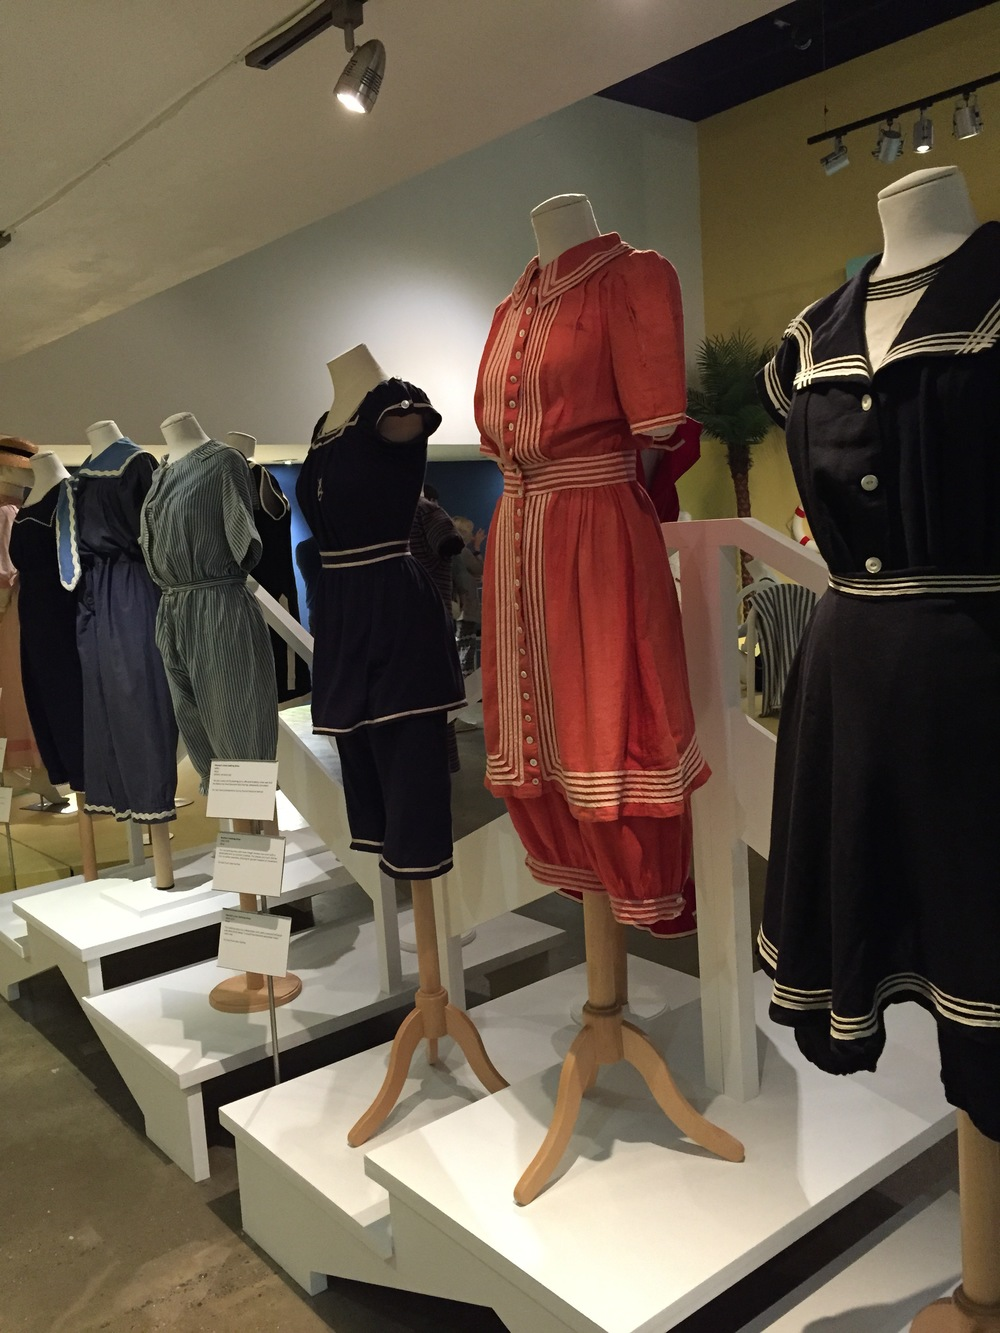 Examples of some of the first bathing suits showcased in the exhibition.